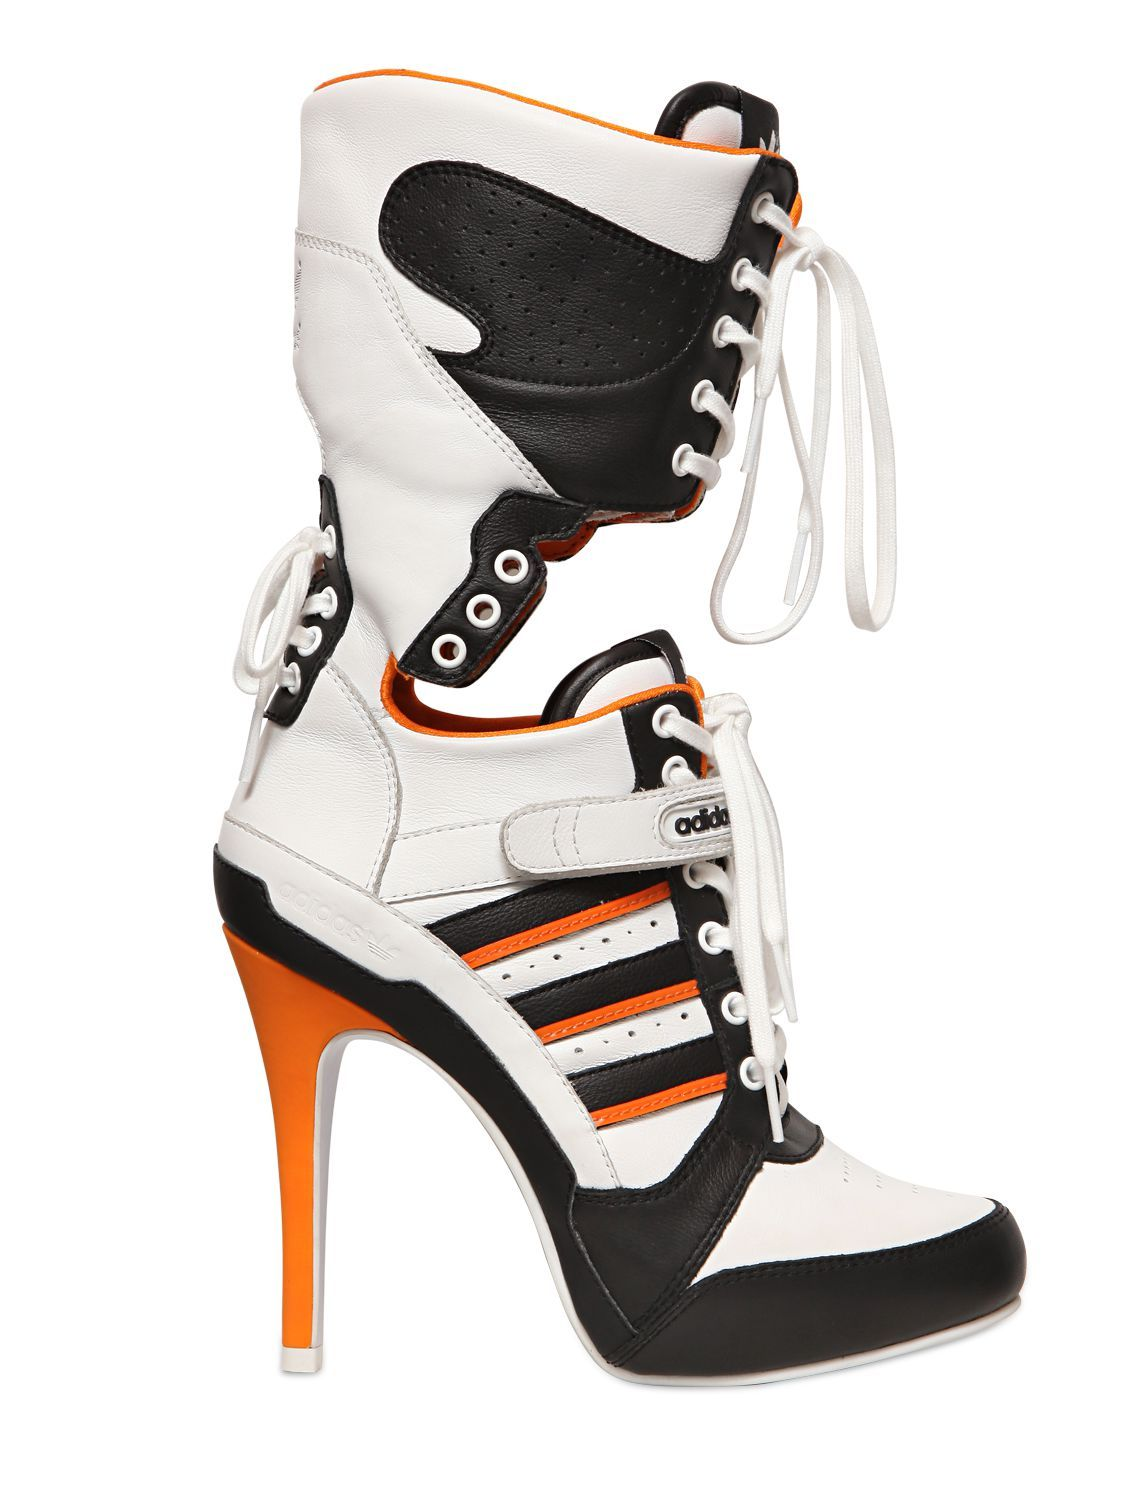 20a9a0097a57 ADIDAS BY JEREMY SCOTT 130MM JS HIGH HEEL LEATHER BOOTS - Harley Quinn Shoes  in Suicide